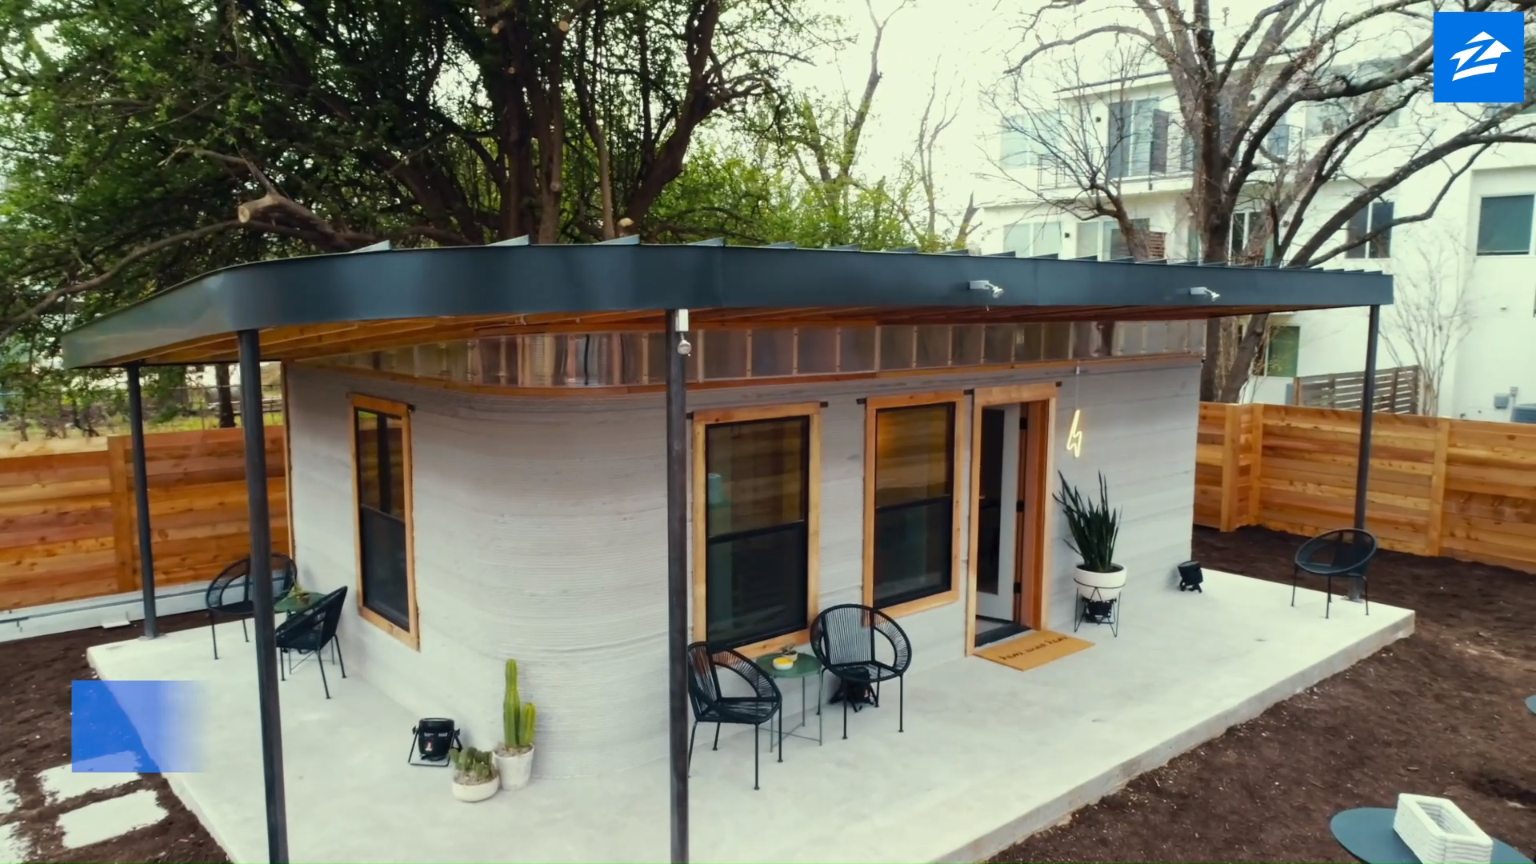 Look Inside Americas First 3D-Printed Home